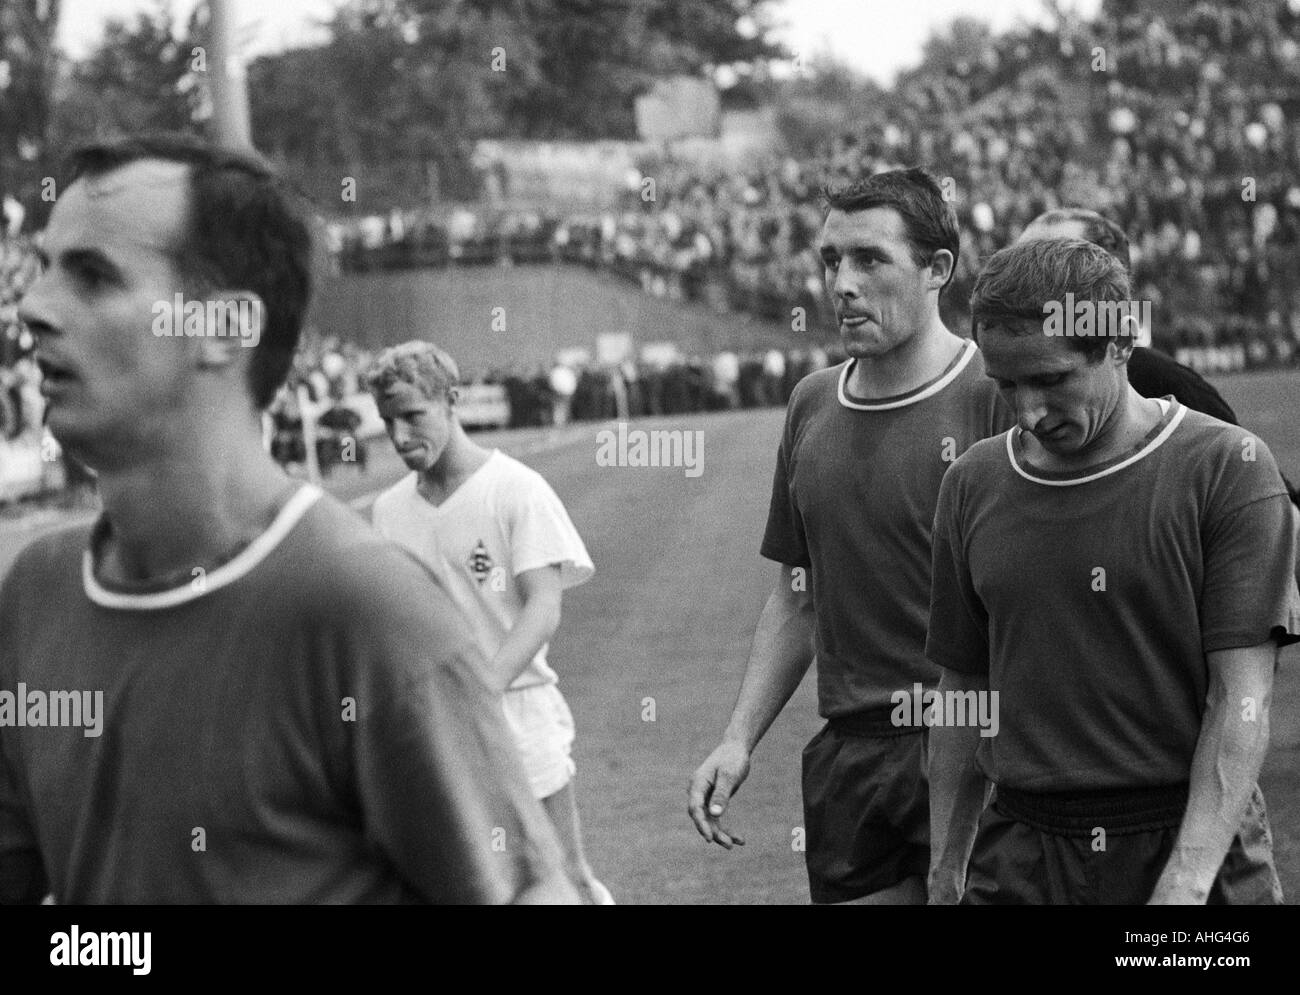 football, Bundesliga, 1967/1968, Borussia Moenchengladbach versus 1. FC Kaiserslautern 8:2, Boekelberg Stadium, football players leaving the pitch, f.l.t.r. Gerd Roggensack (FCK), Berti Vogts (MG), Bernd Windhausen (FCK), Helmut Kapitulski (FCK) - Stock Image